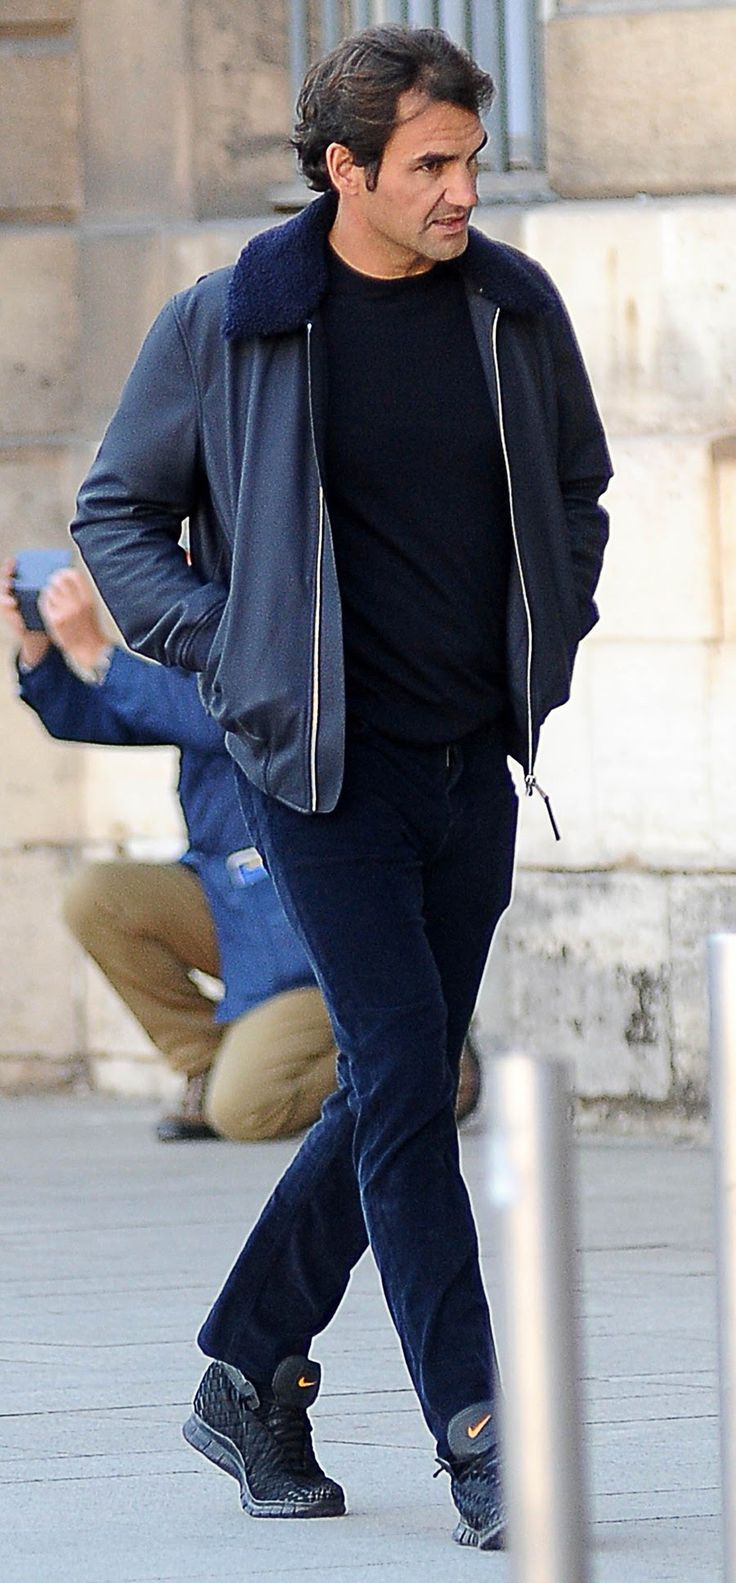 Even off-duty Federer looks elegant. His fur-collar bomber and monotone navy rig is one every guy can pull off.